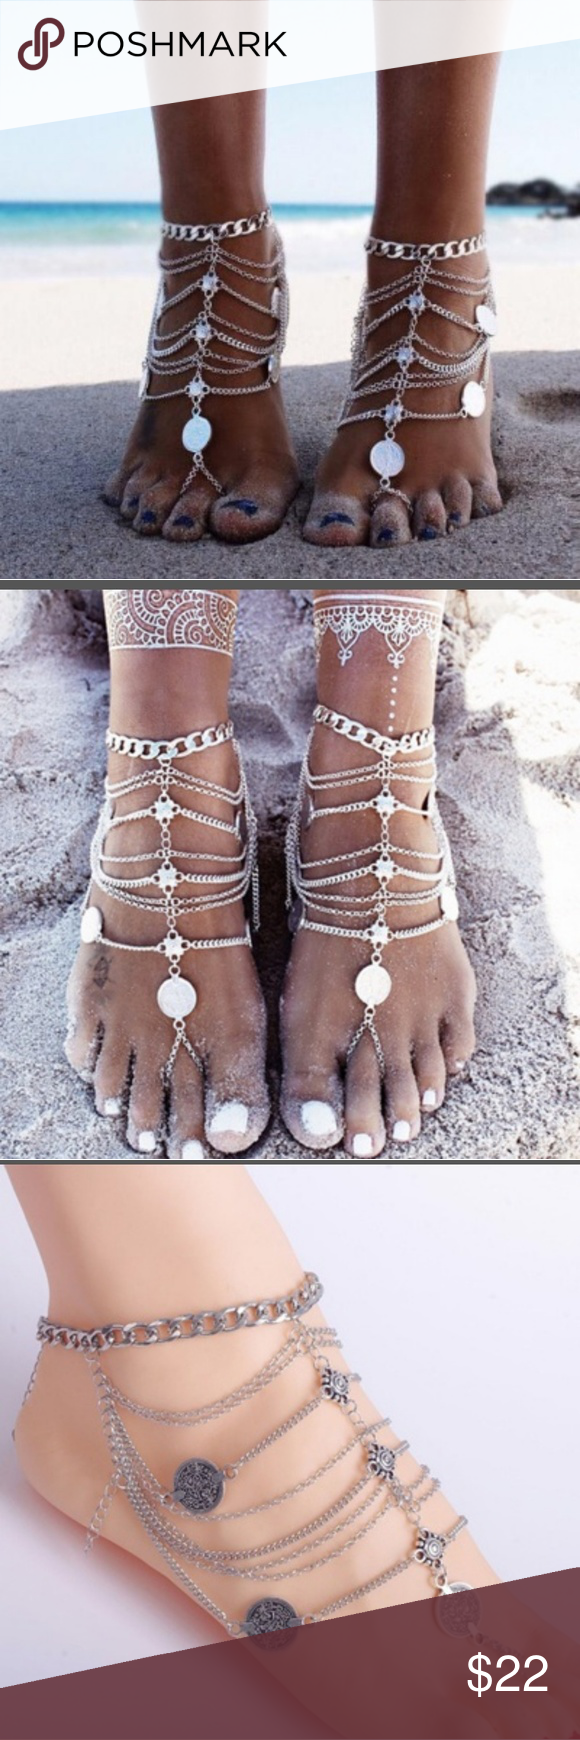 anklets barefoot unique designs infinity bracelets hot product beads chains and jewelery stretch ankle gold new pretty fake turquoise from anklet sandals